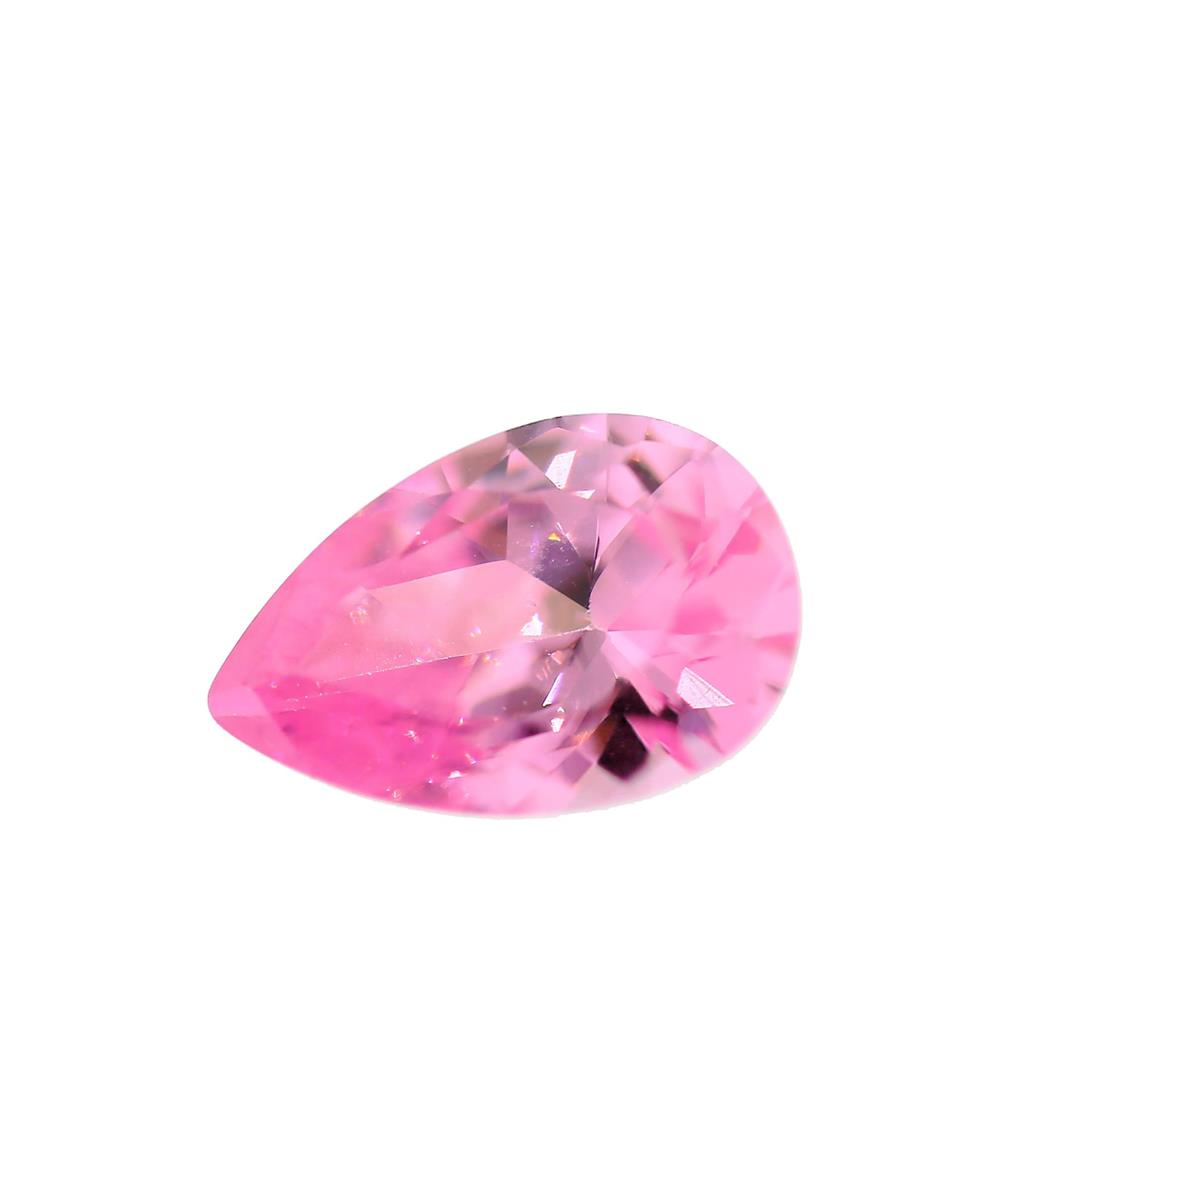 Cubic Zirconia Pink 9x6mm Pear